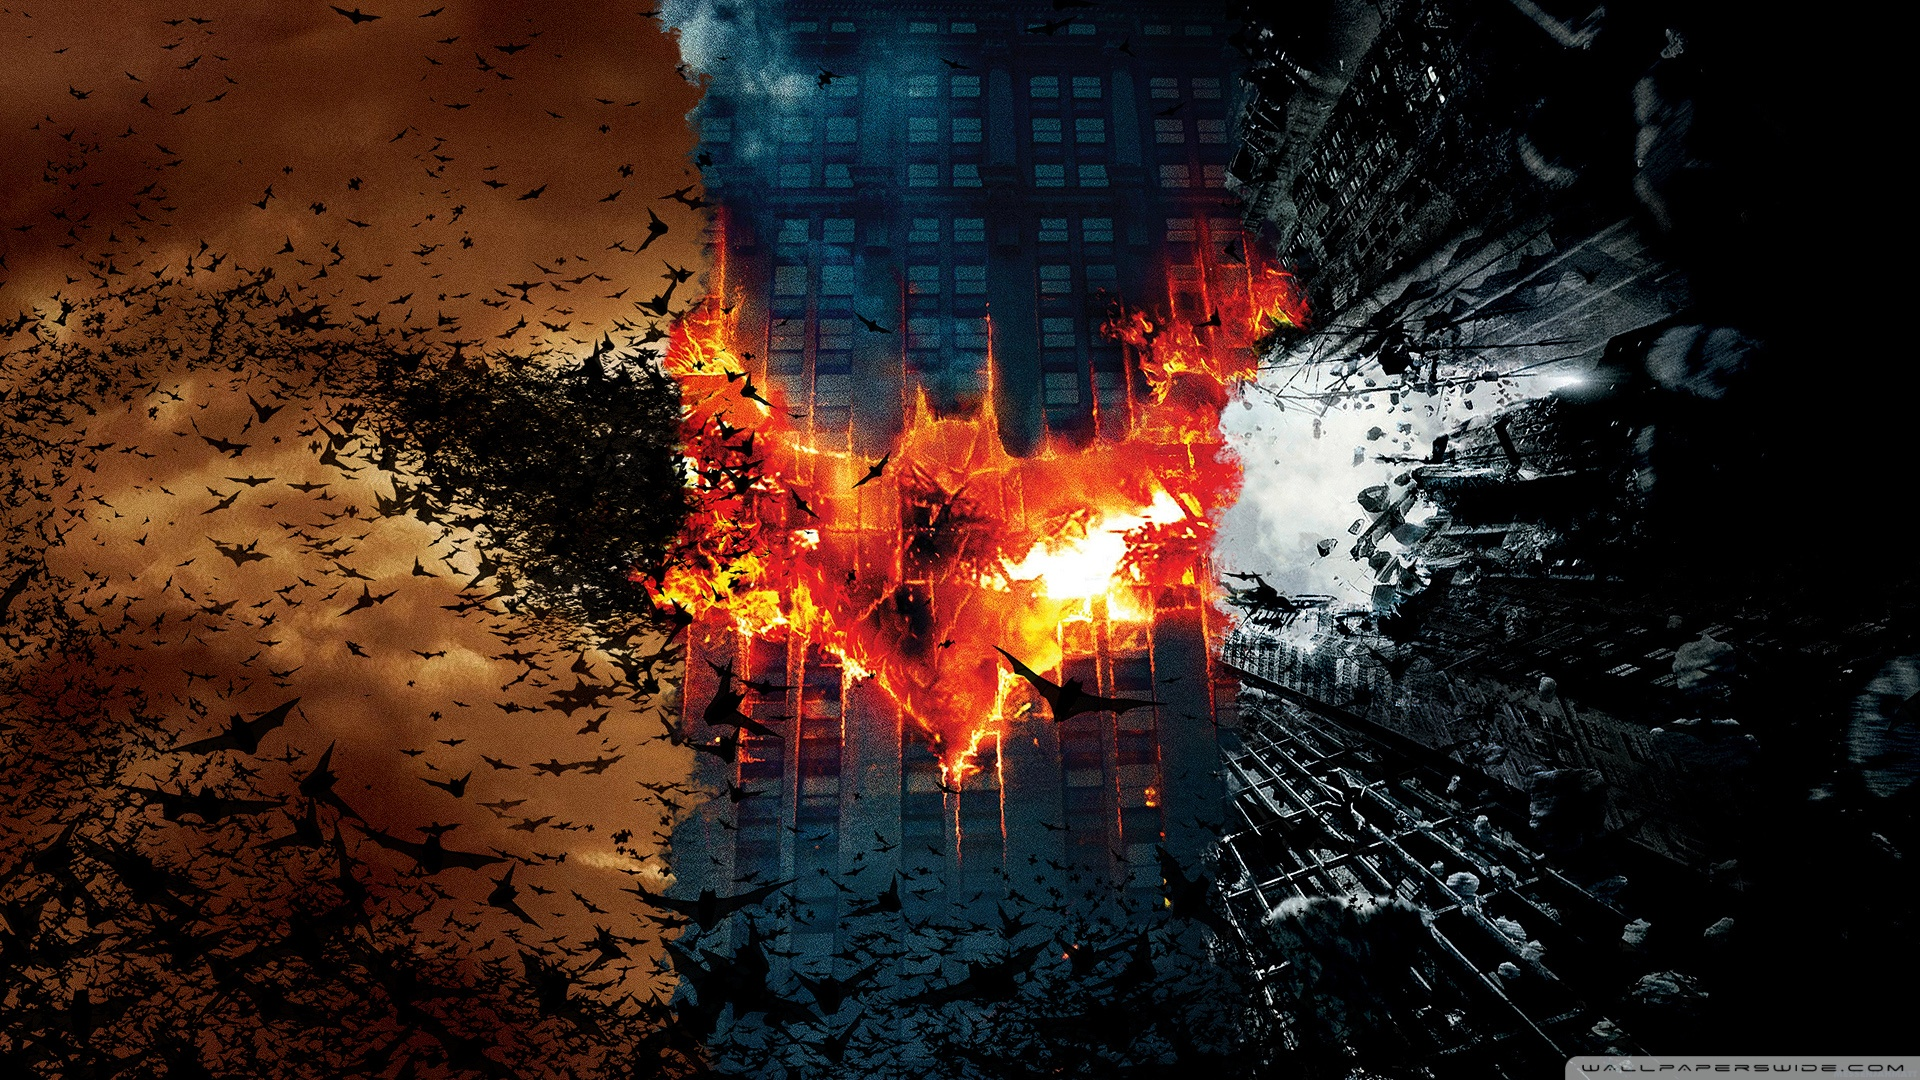 Batman Trilogy Great Wallpaper 1920x1080 HD Wallpaper Movies 1920x1080